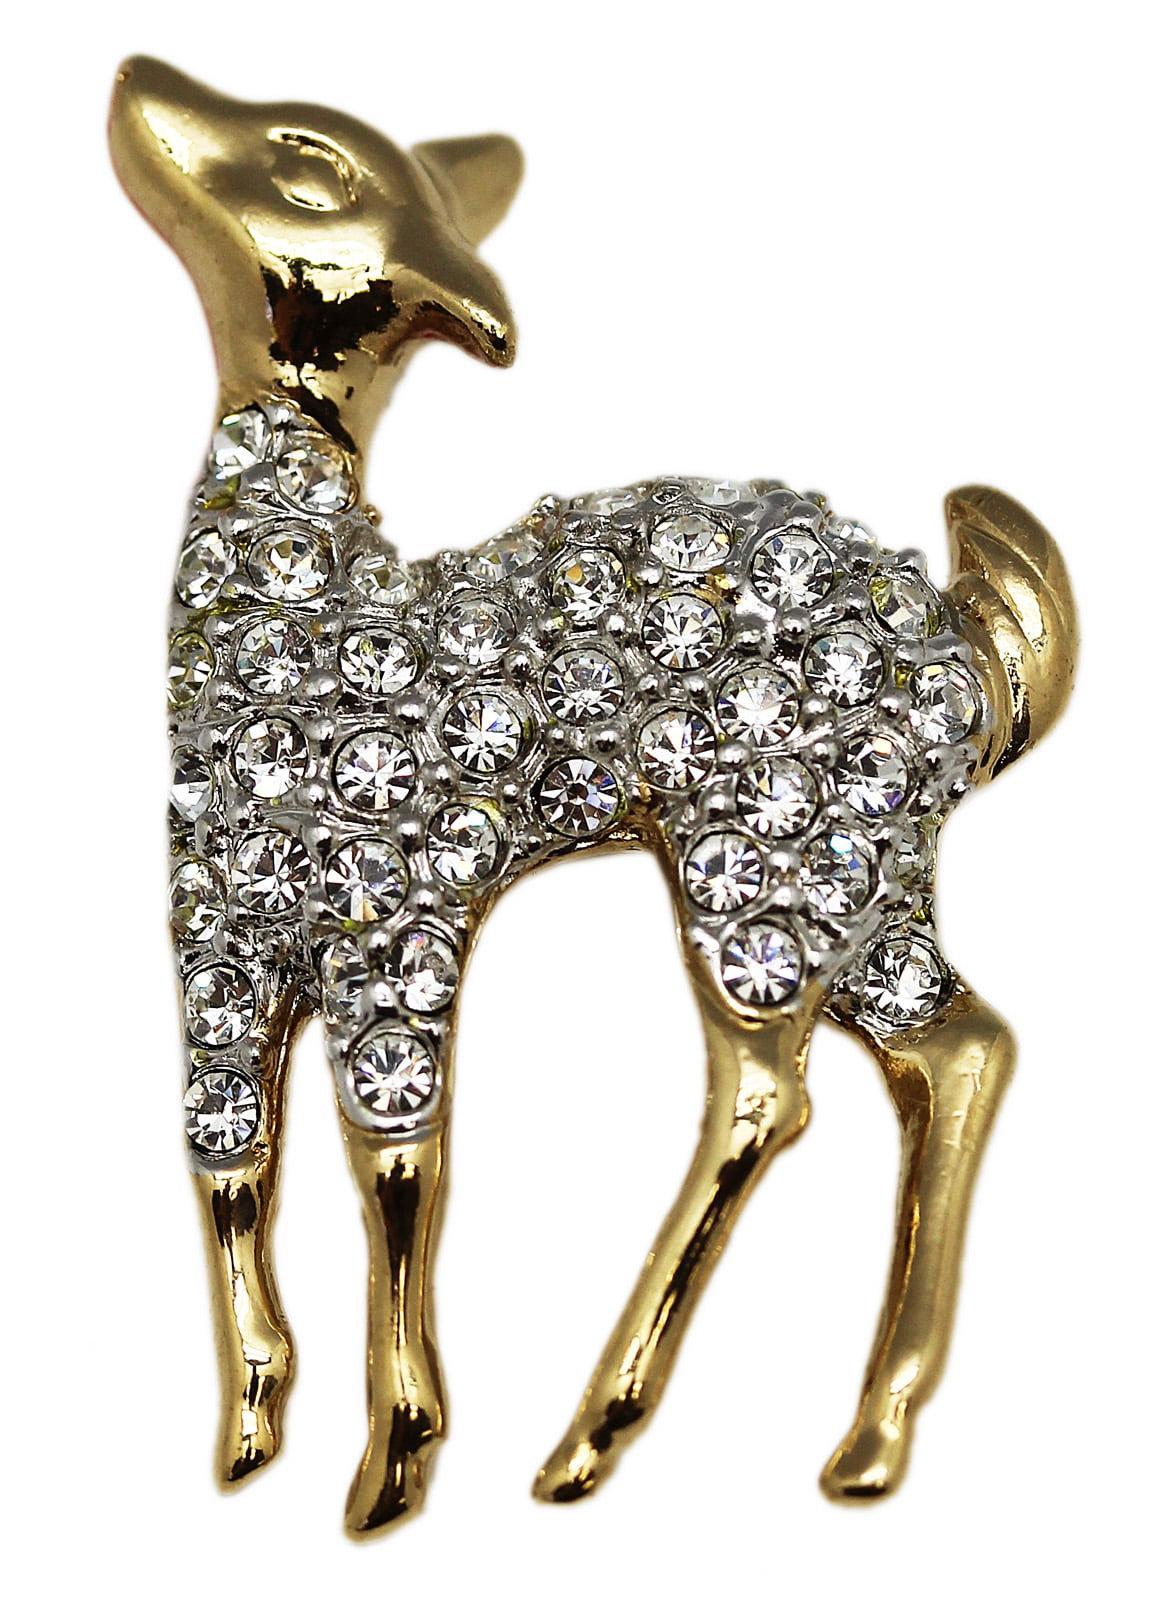 Adorable Golden Deer Brooch With Clear Rhinestones by